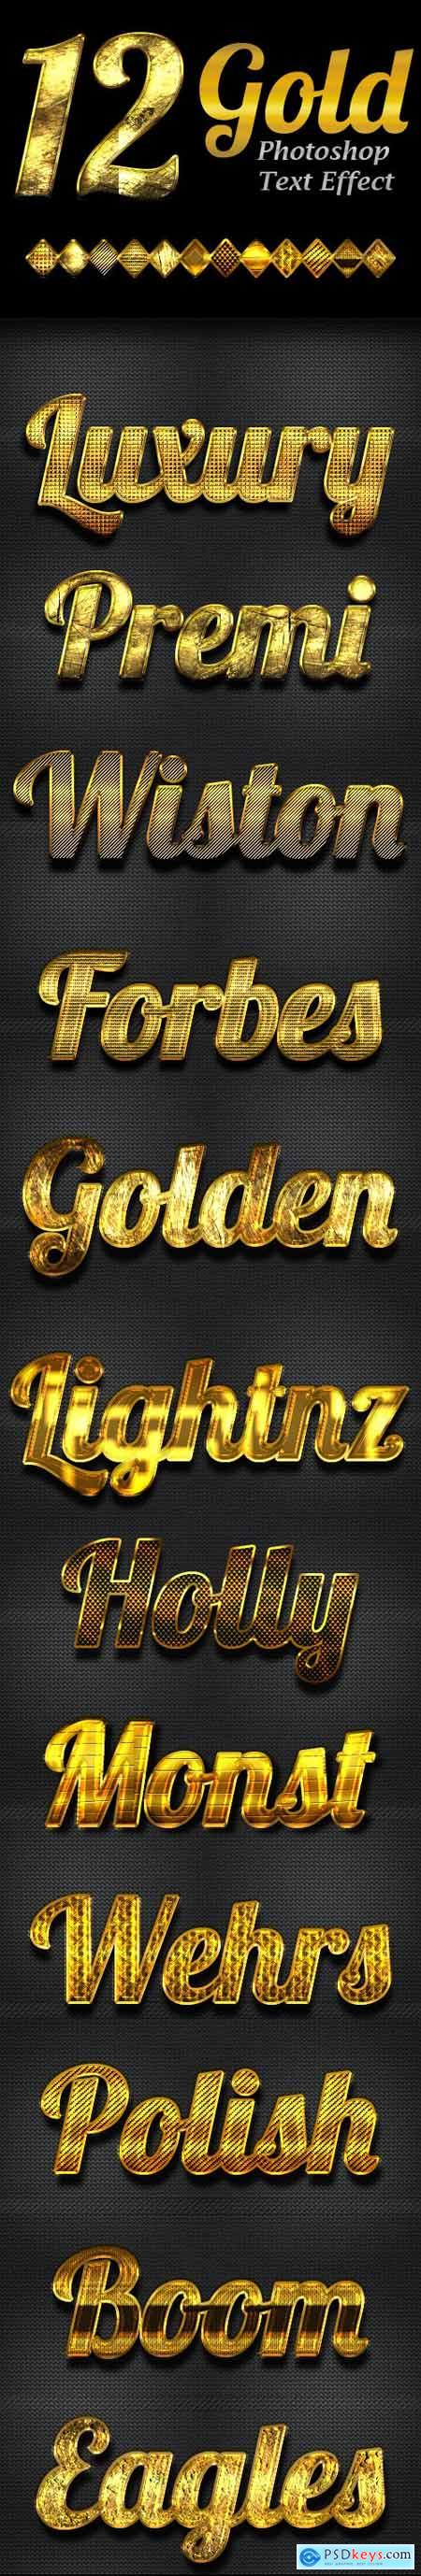 12 Gold Photoshop Text Effect Styles 23142842